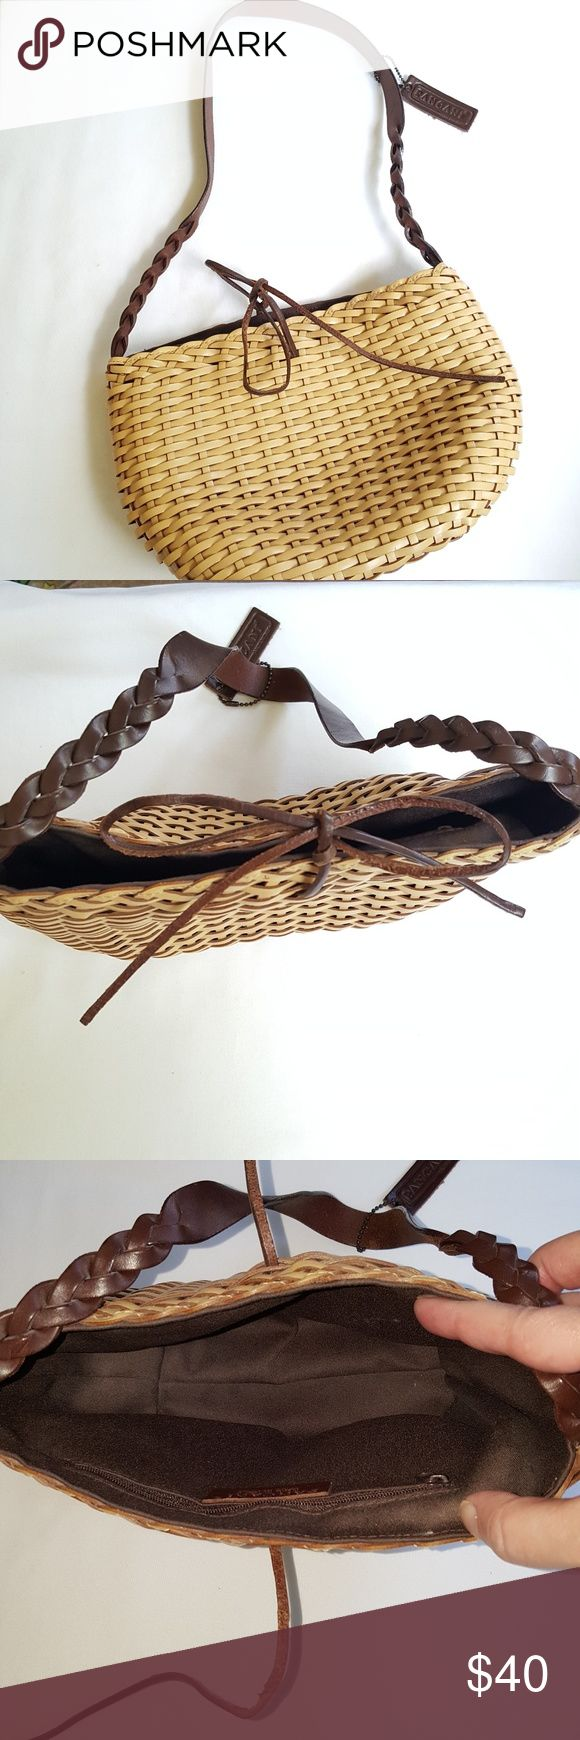 Pancani || Woven leather Mini Shoulder bBag Wheat color. Brown leather half braided straps. Brown leather tie to close. One zip pocket inside. Clean. Never used. Made in Italy. Pancani Bags Shoulder Bags